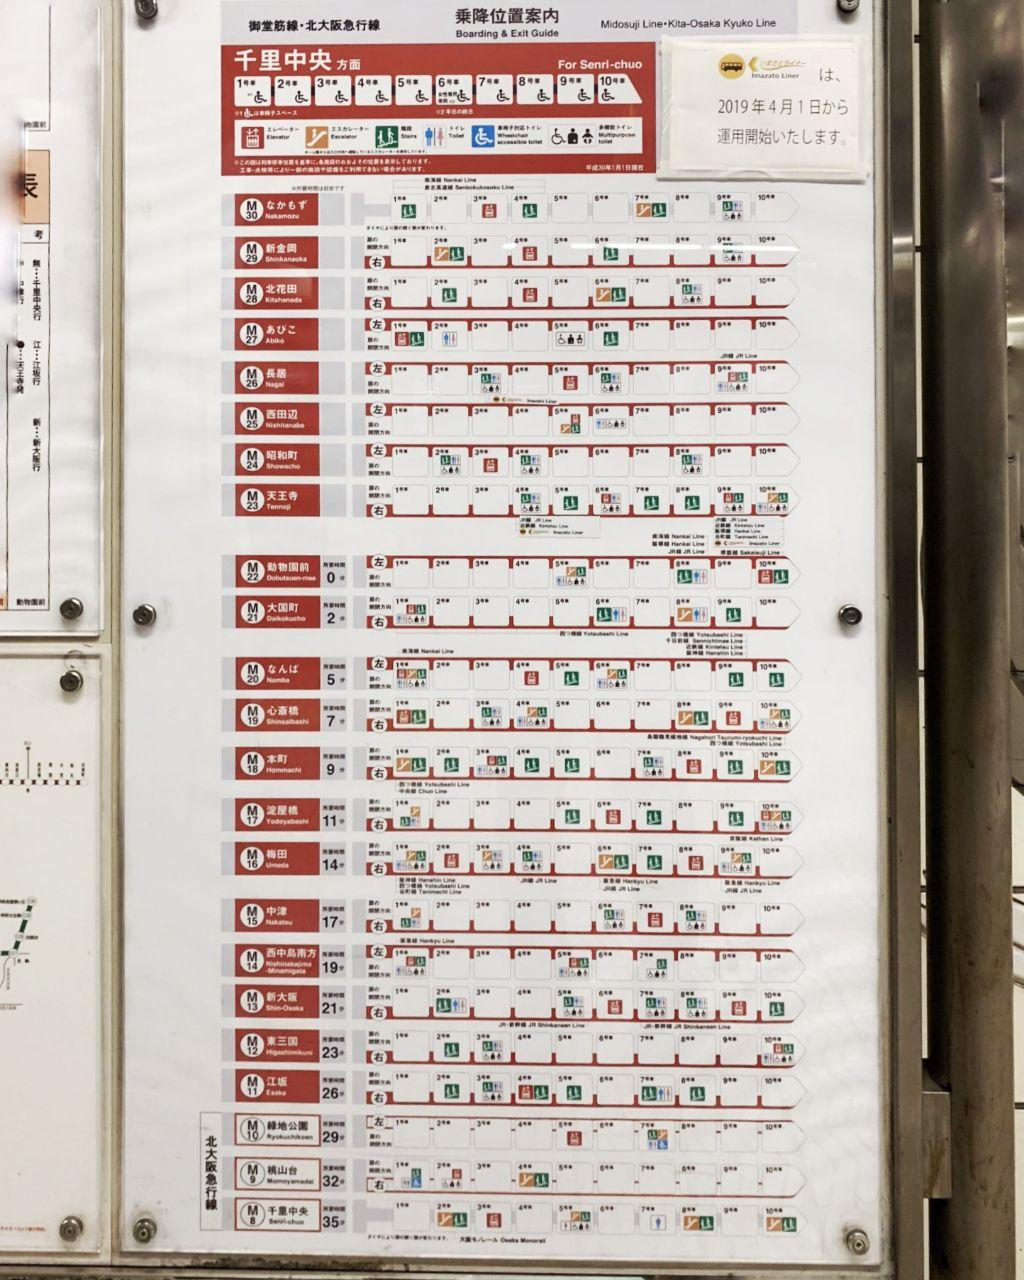 Boarding and Exit Guide in Tokyo trains stations